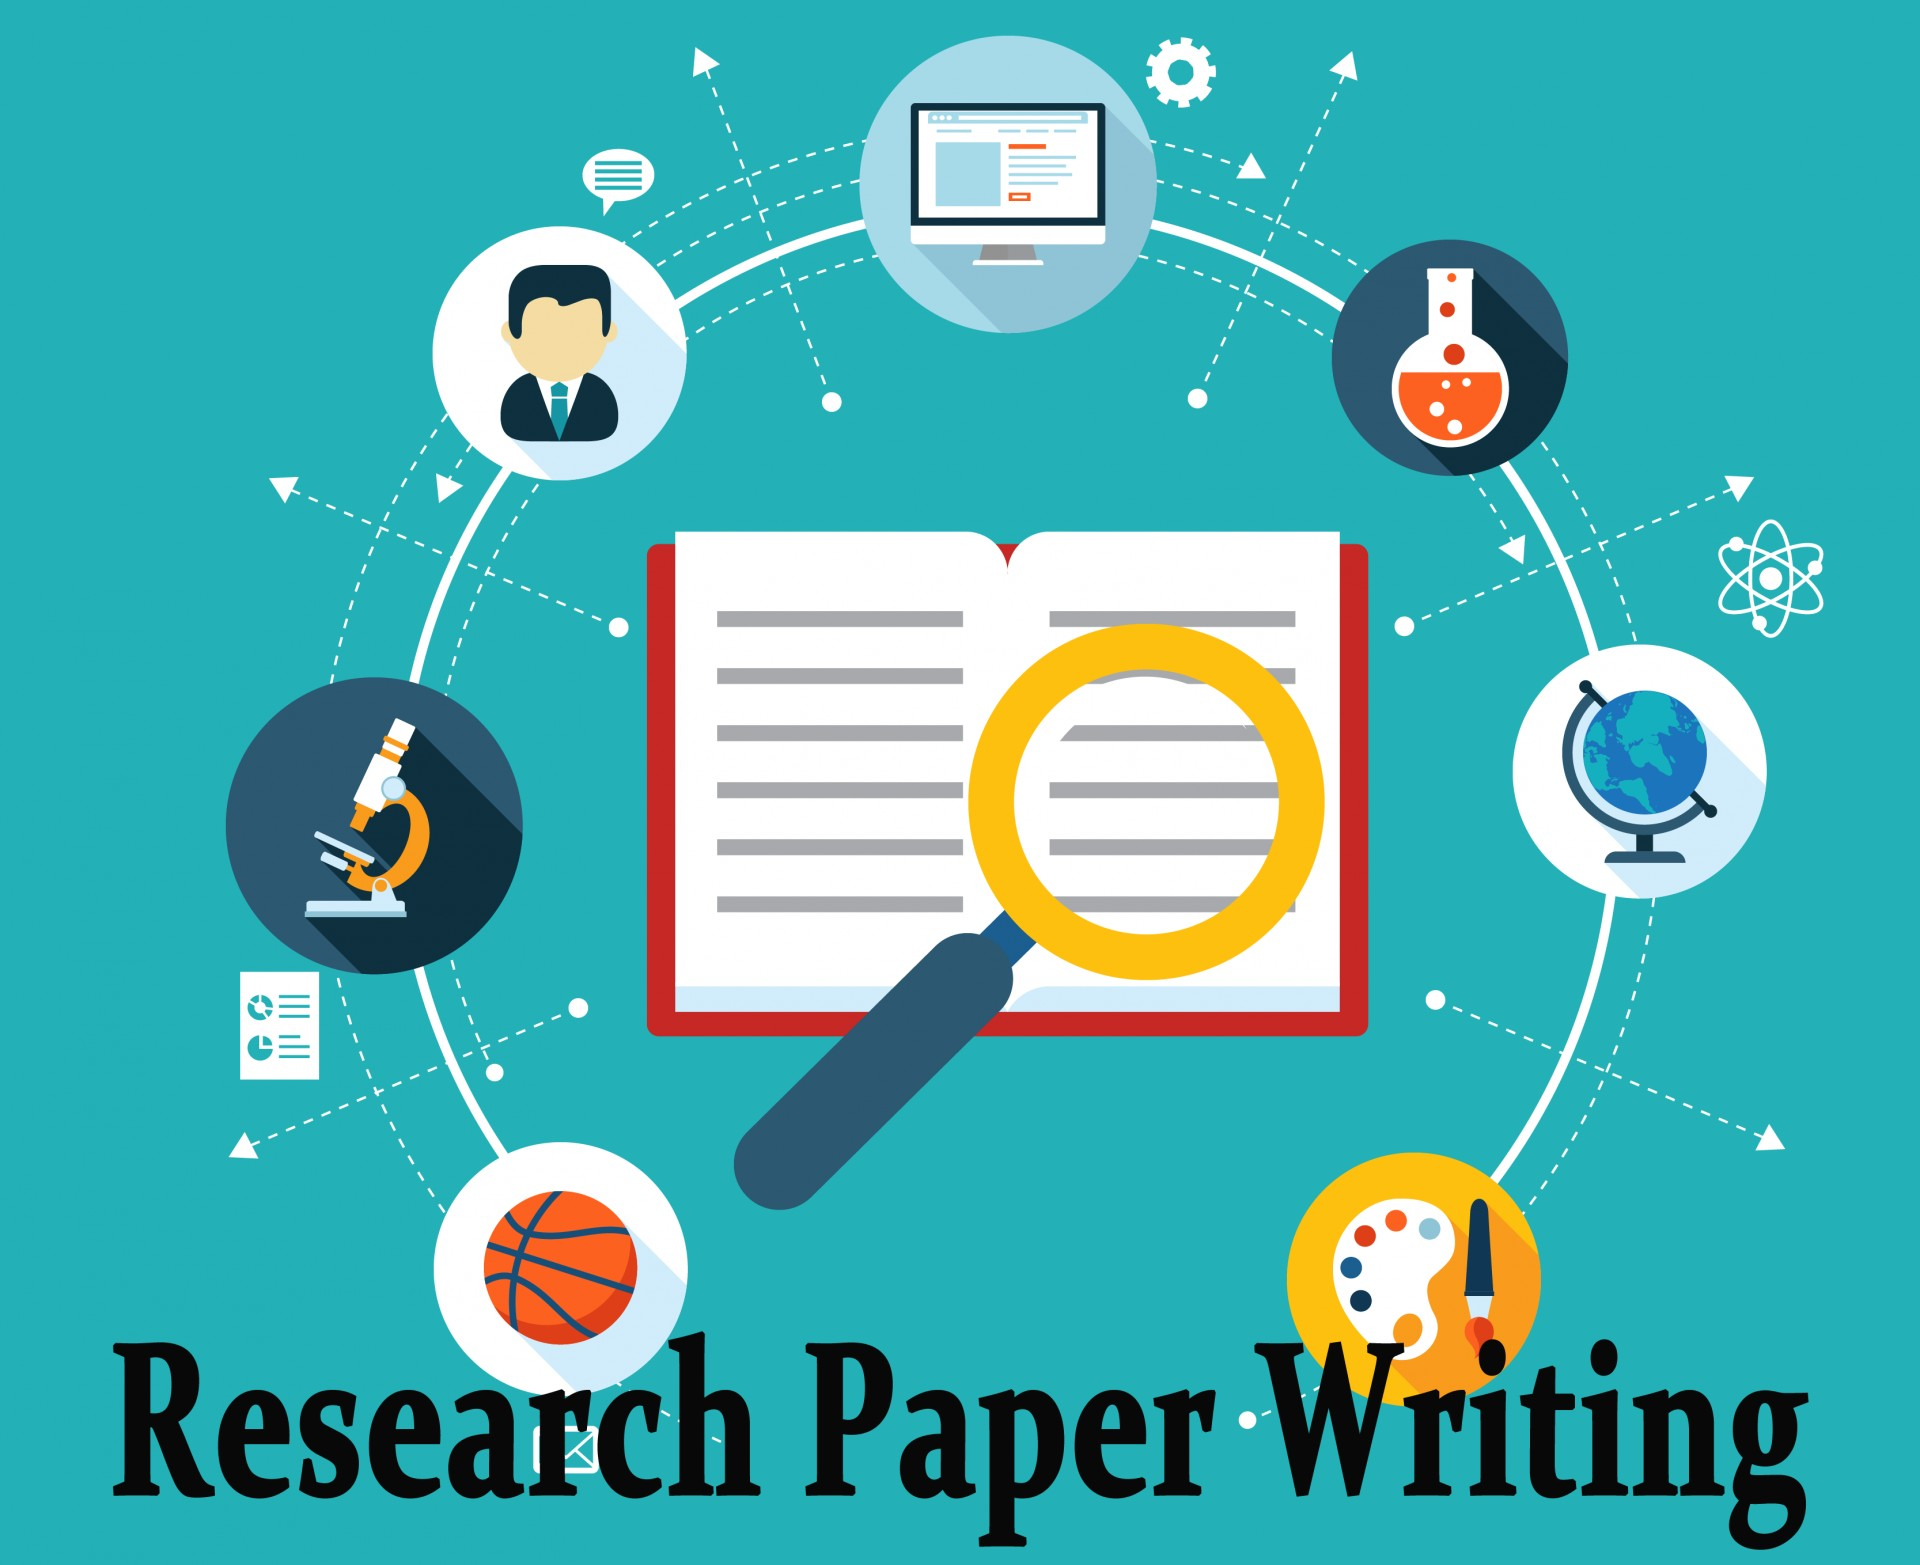 018 503 Effective Research Paper Writing Unique Papers A Complete Guide 15th Edition Ebook 16th Pdf Free 1920